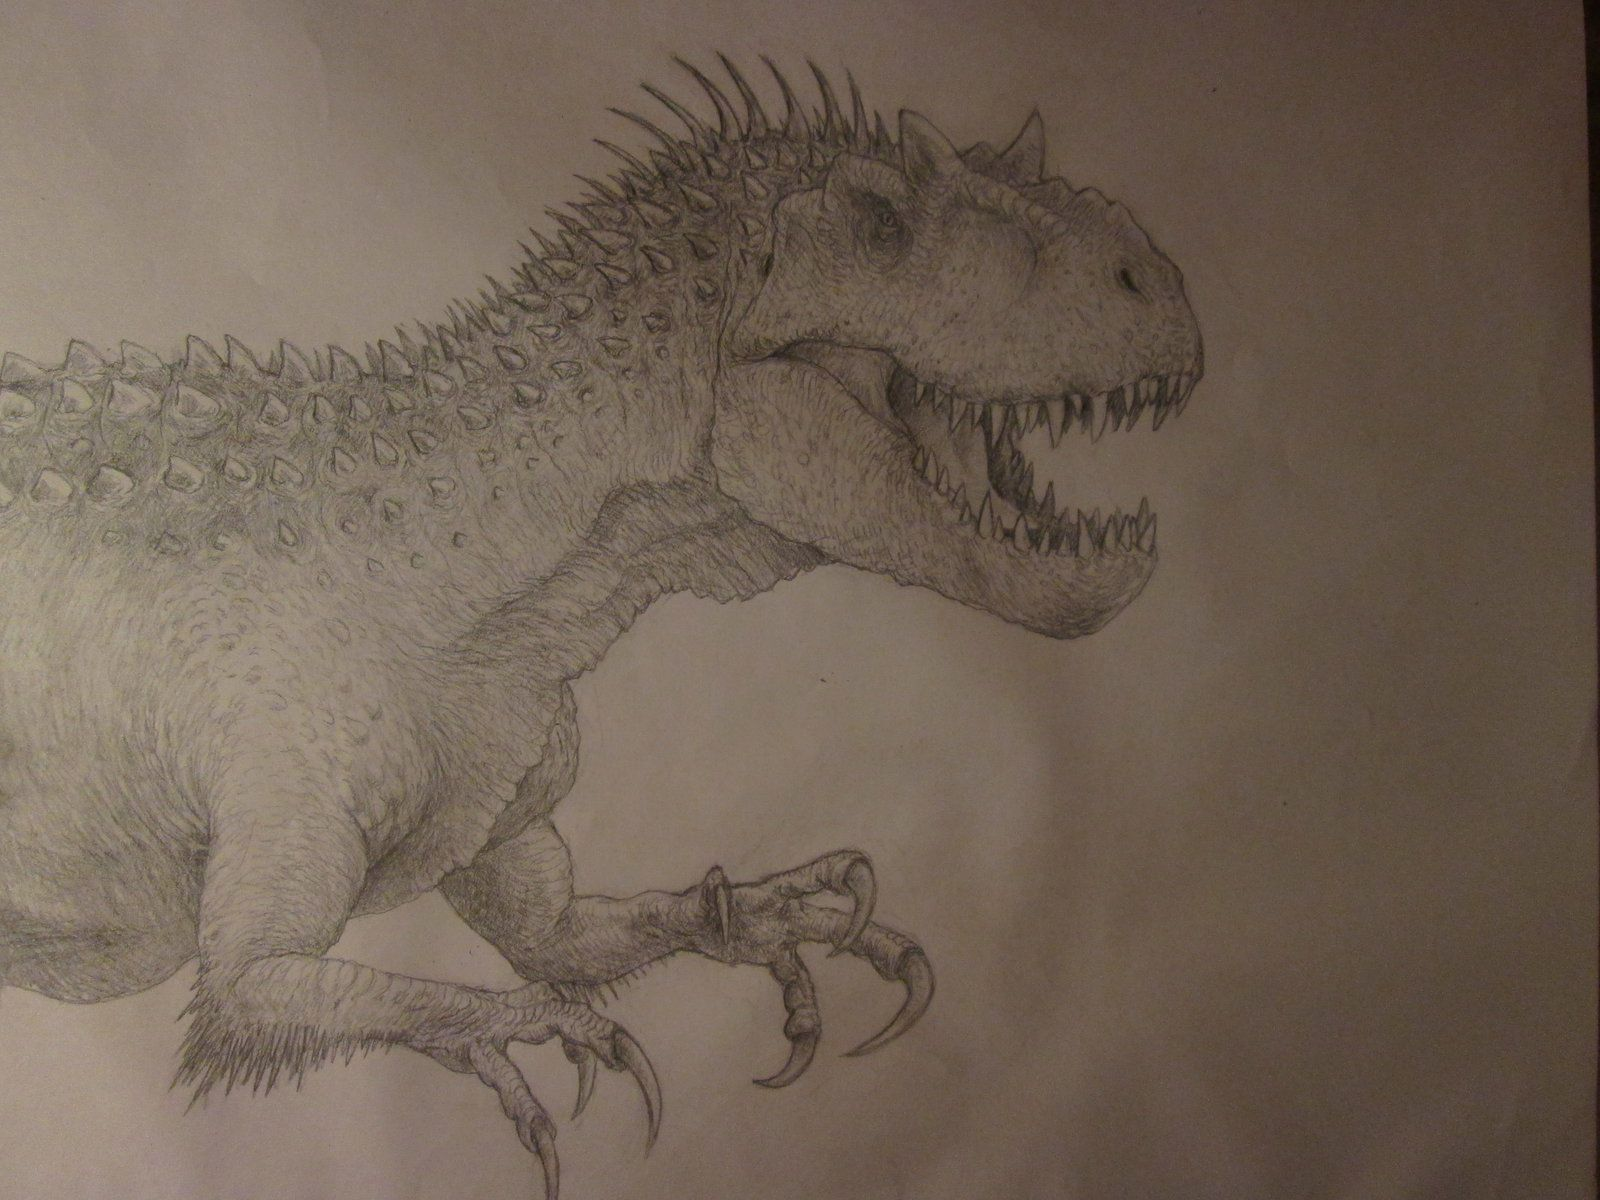 indominus rex Google Search Dinosaur illustration